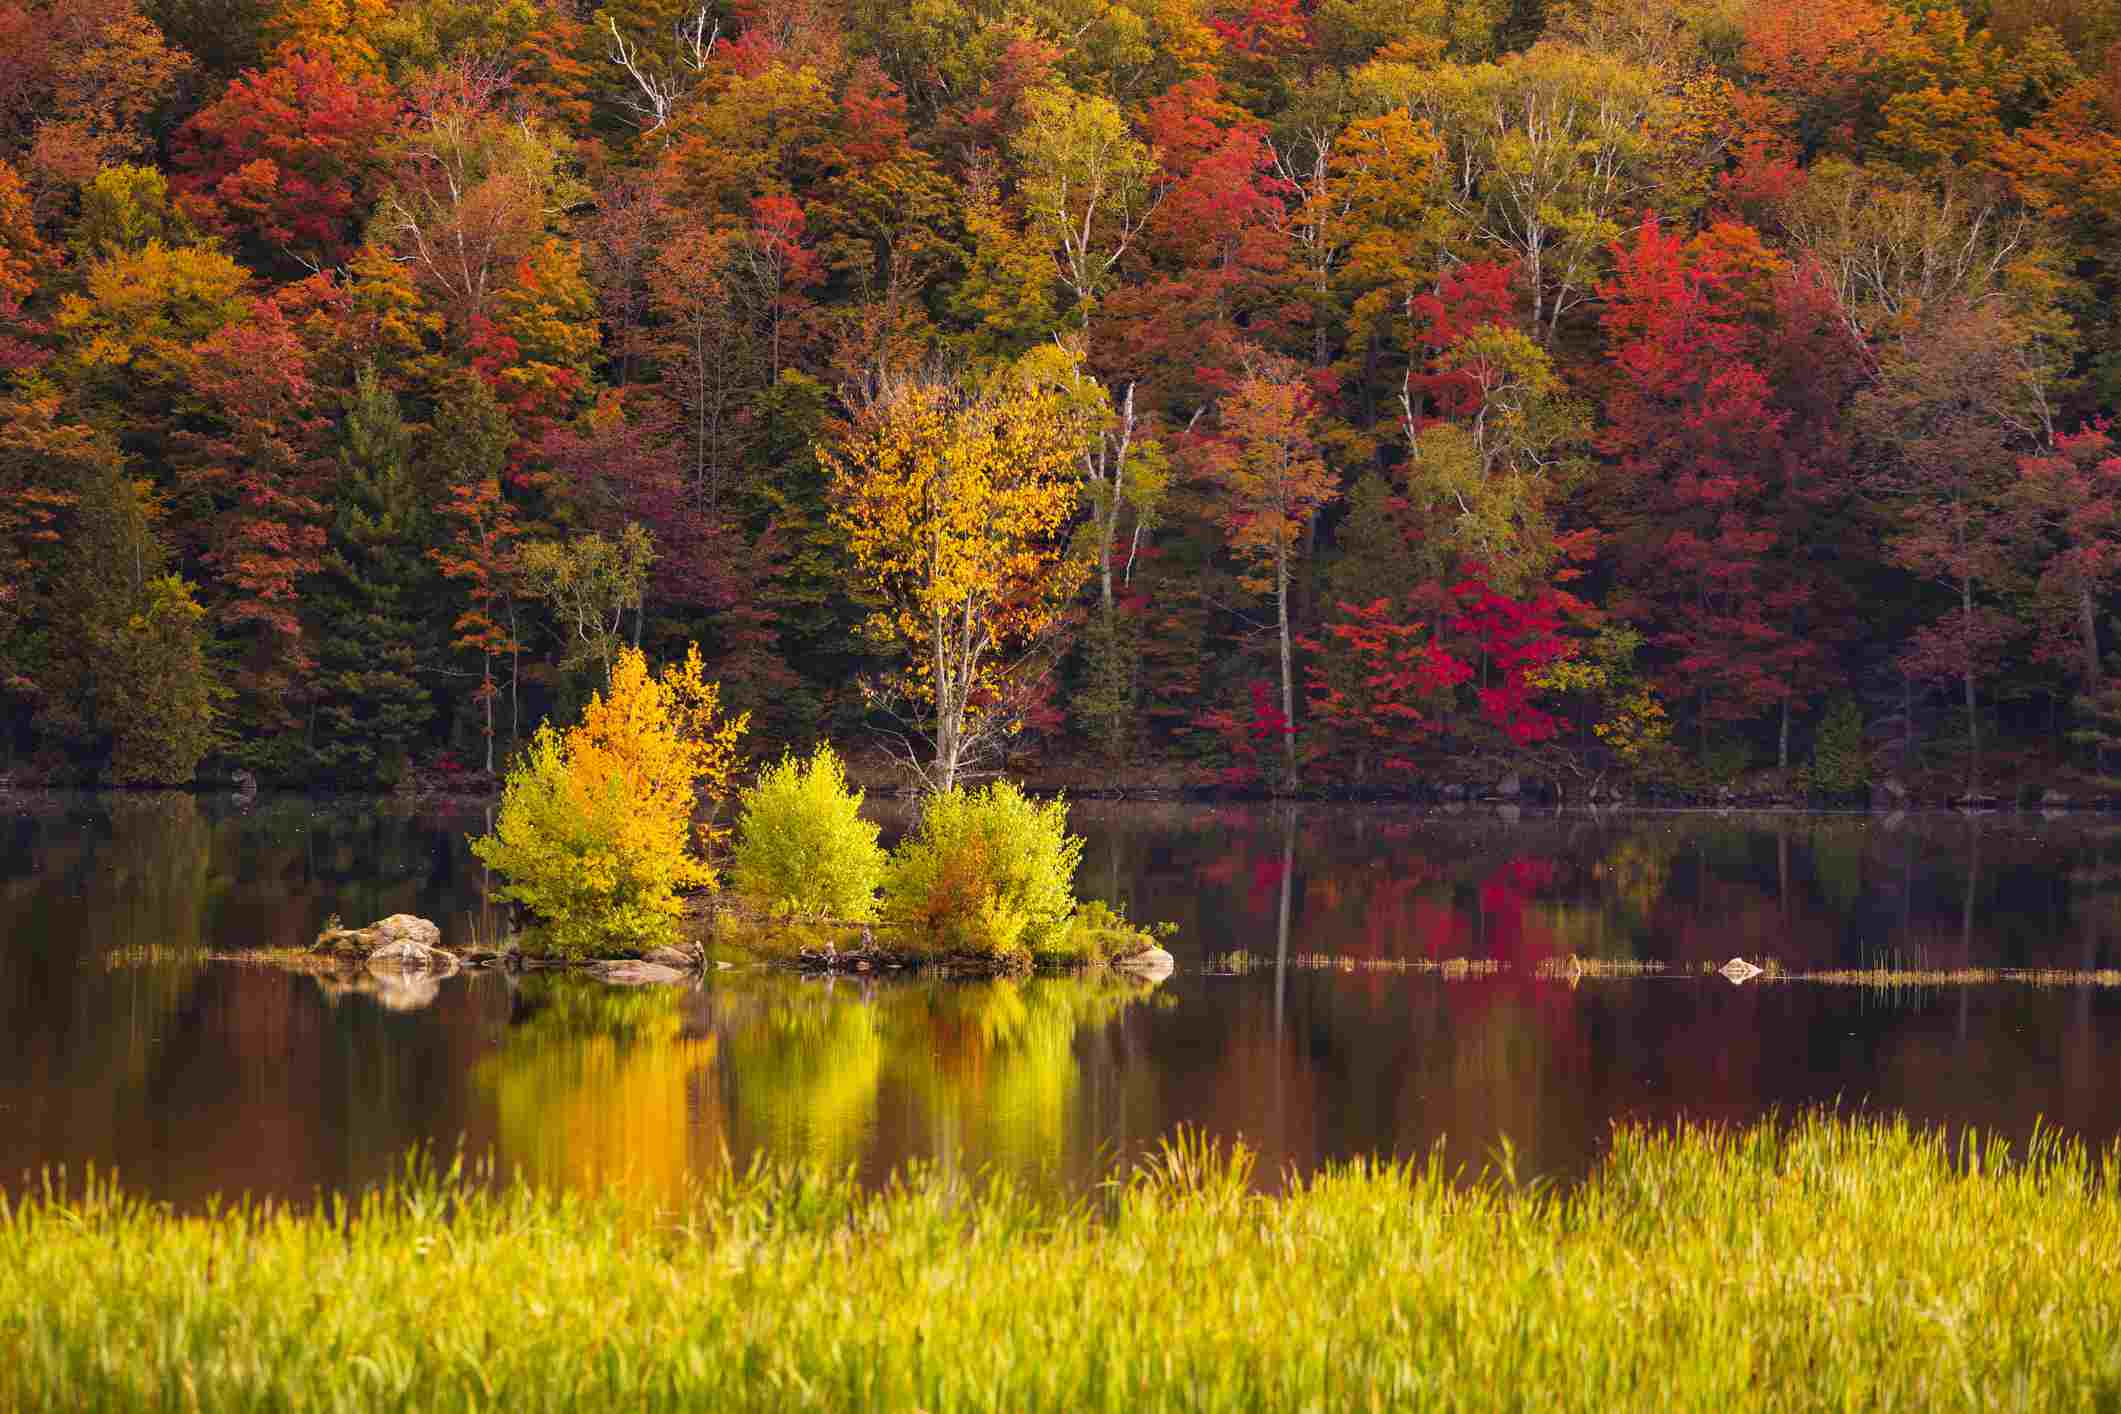 Scenery of Kent Pond lake and forest in autumn